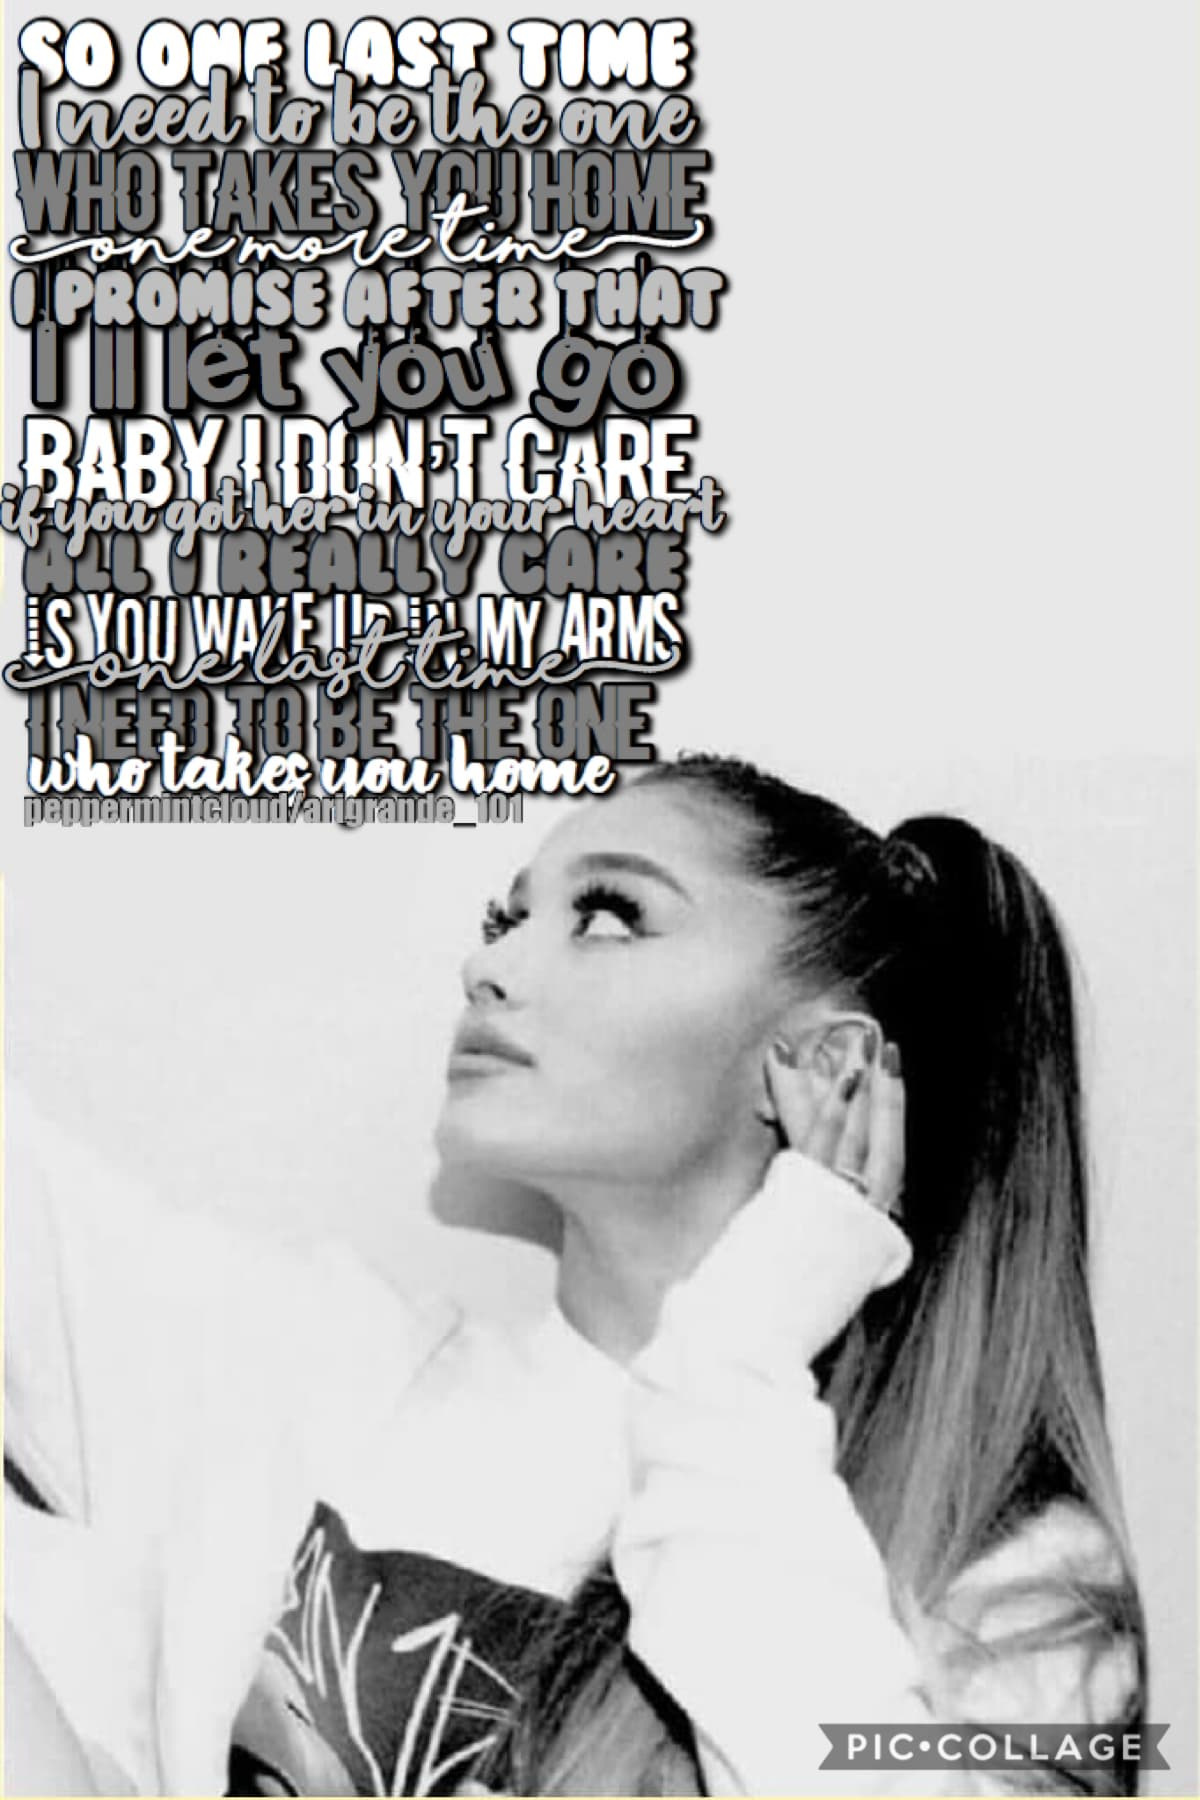 Collab with my bestie....... Arigrande_101!!! Go follow this talented person! She picked out the gorgeous background and I did the text!   10 DAYS TILL CHRISTMAS YAHOO! ☺️☺️